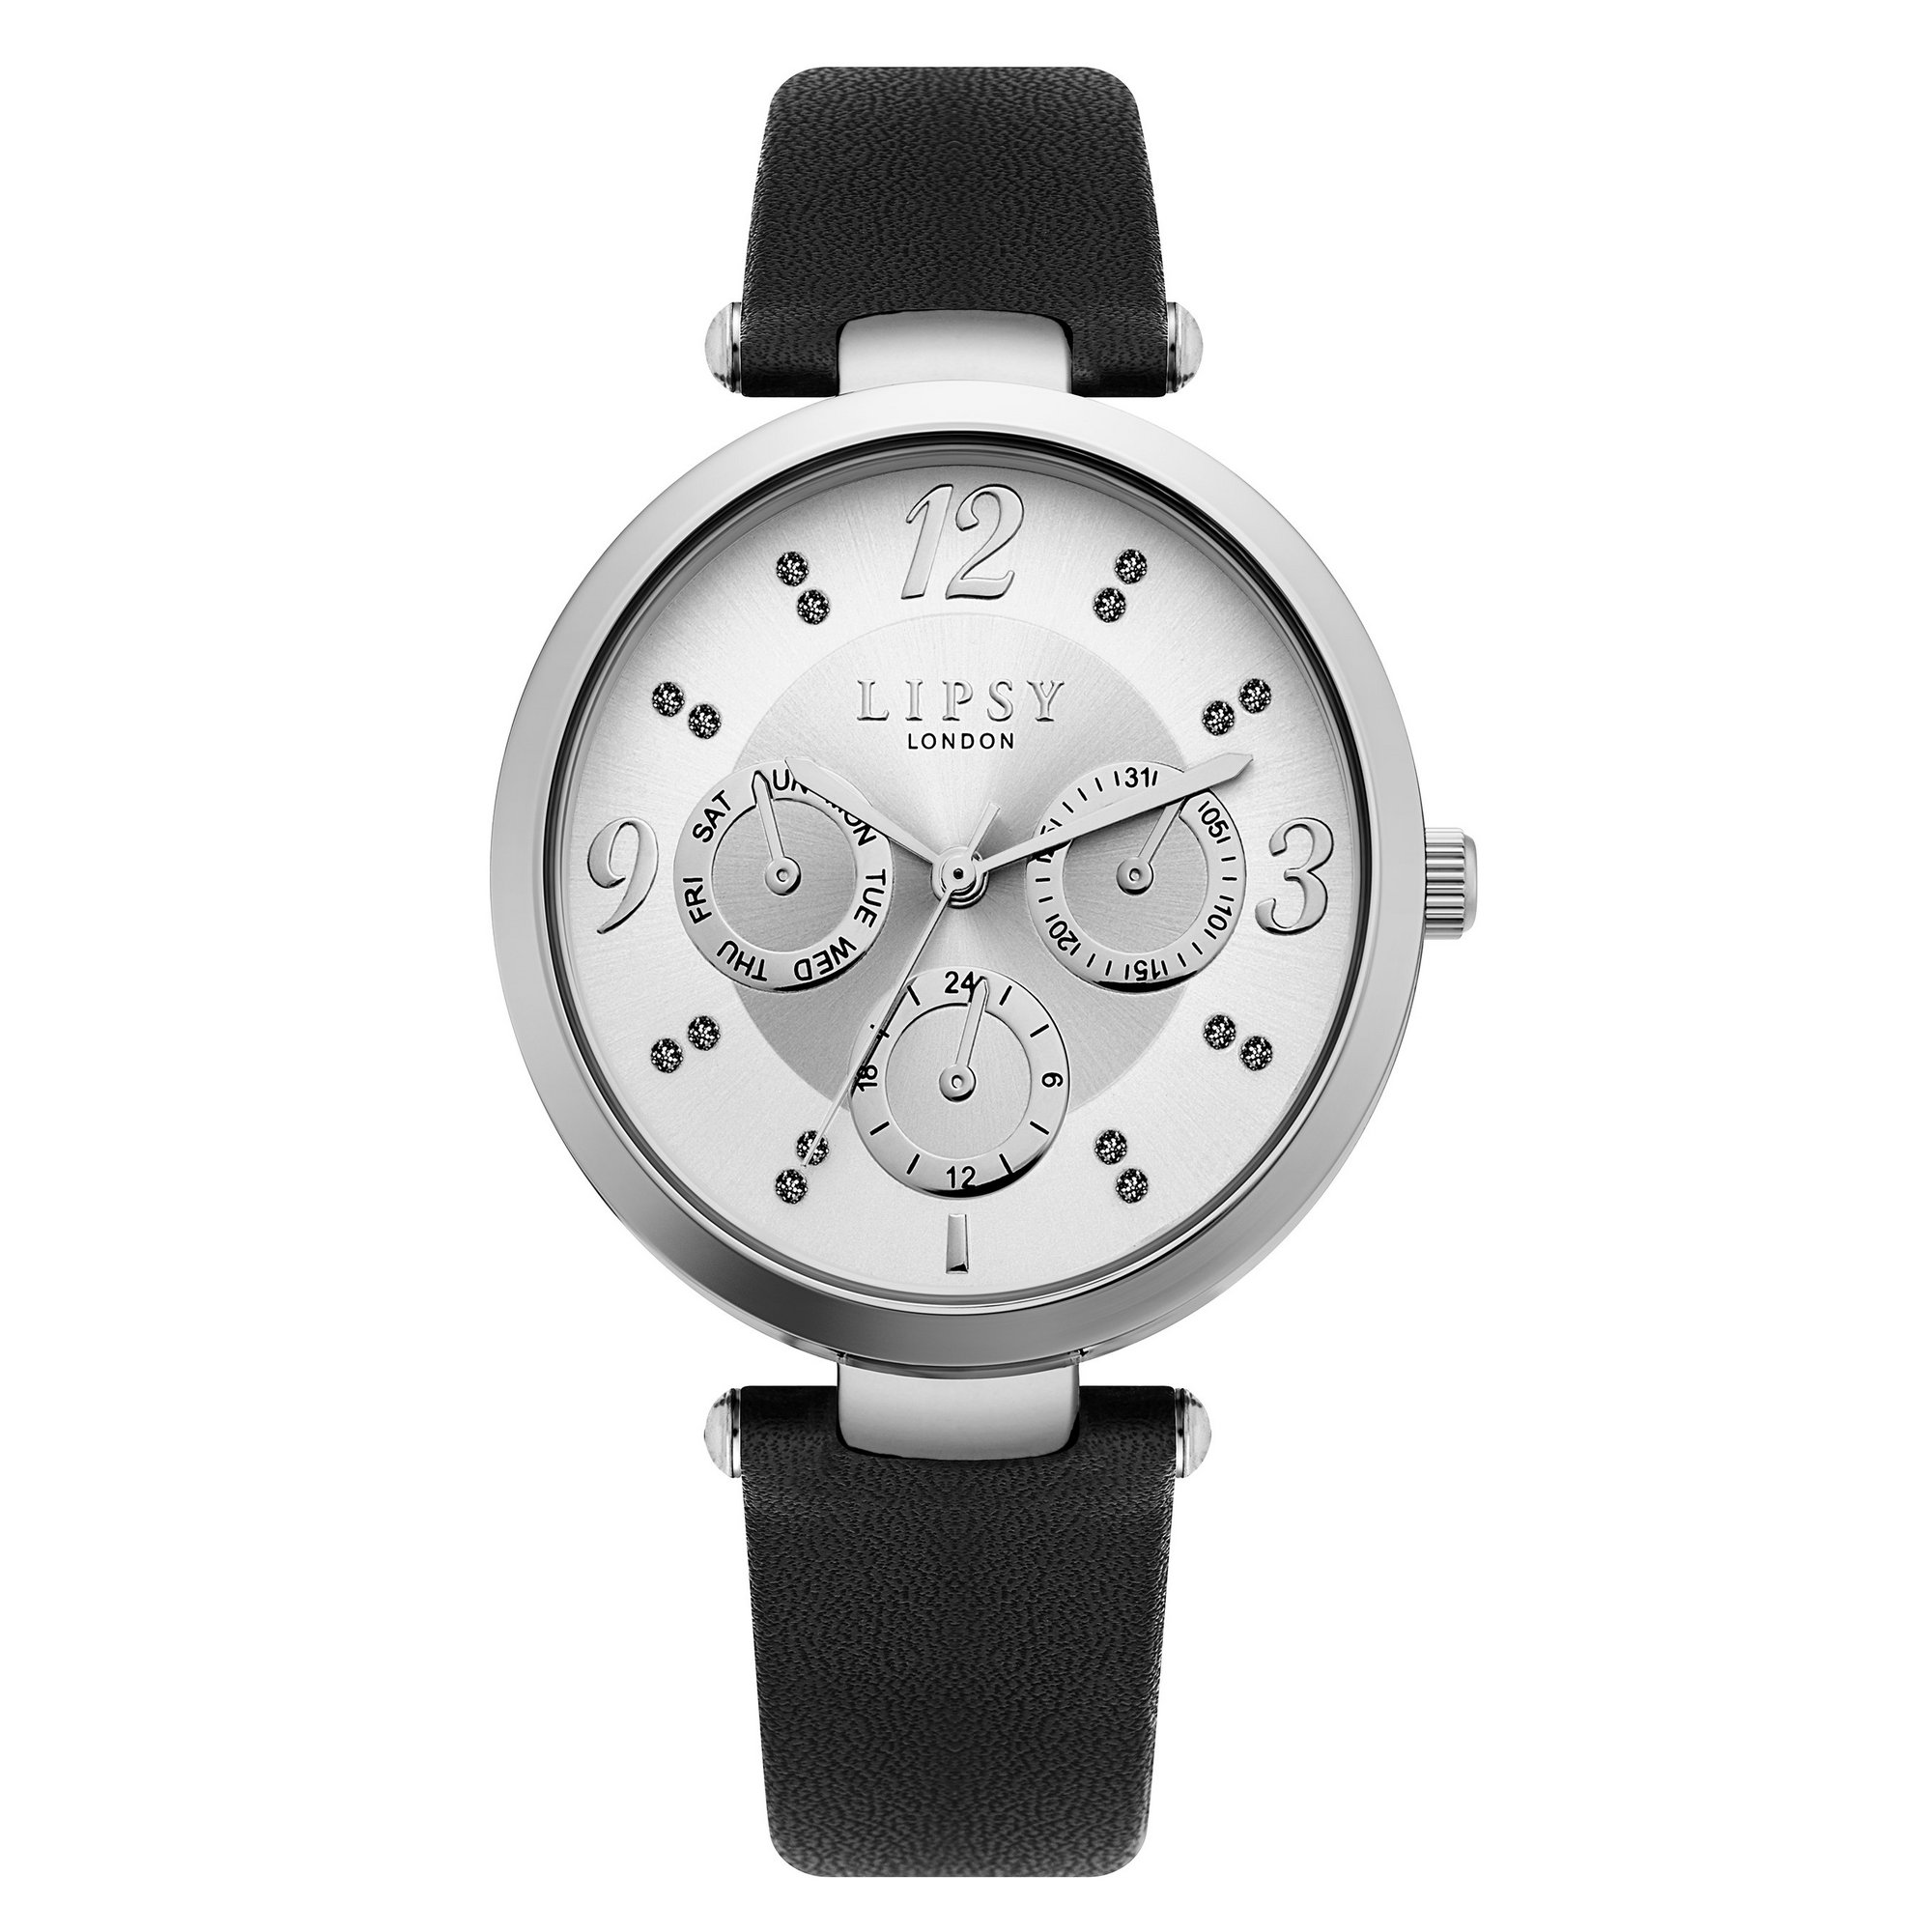 Image of Lipsy Black Strap Watch with Silver Mock Multi Dial